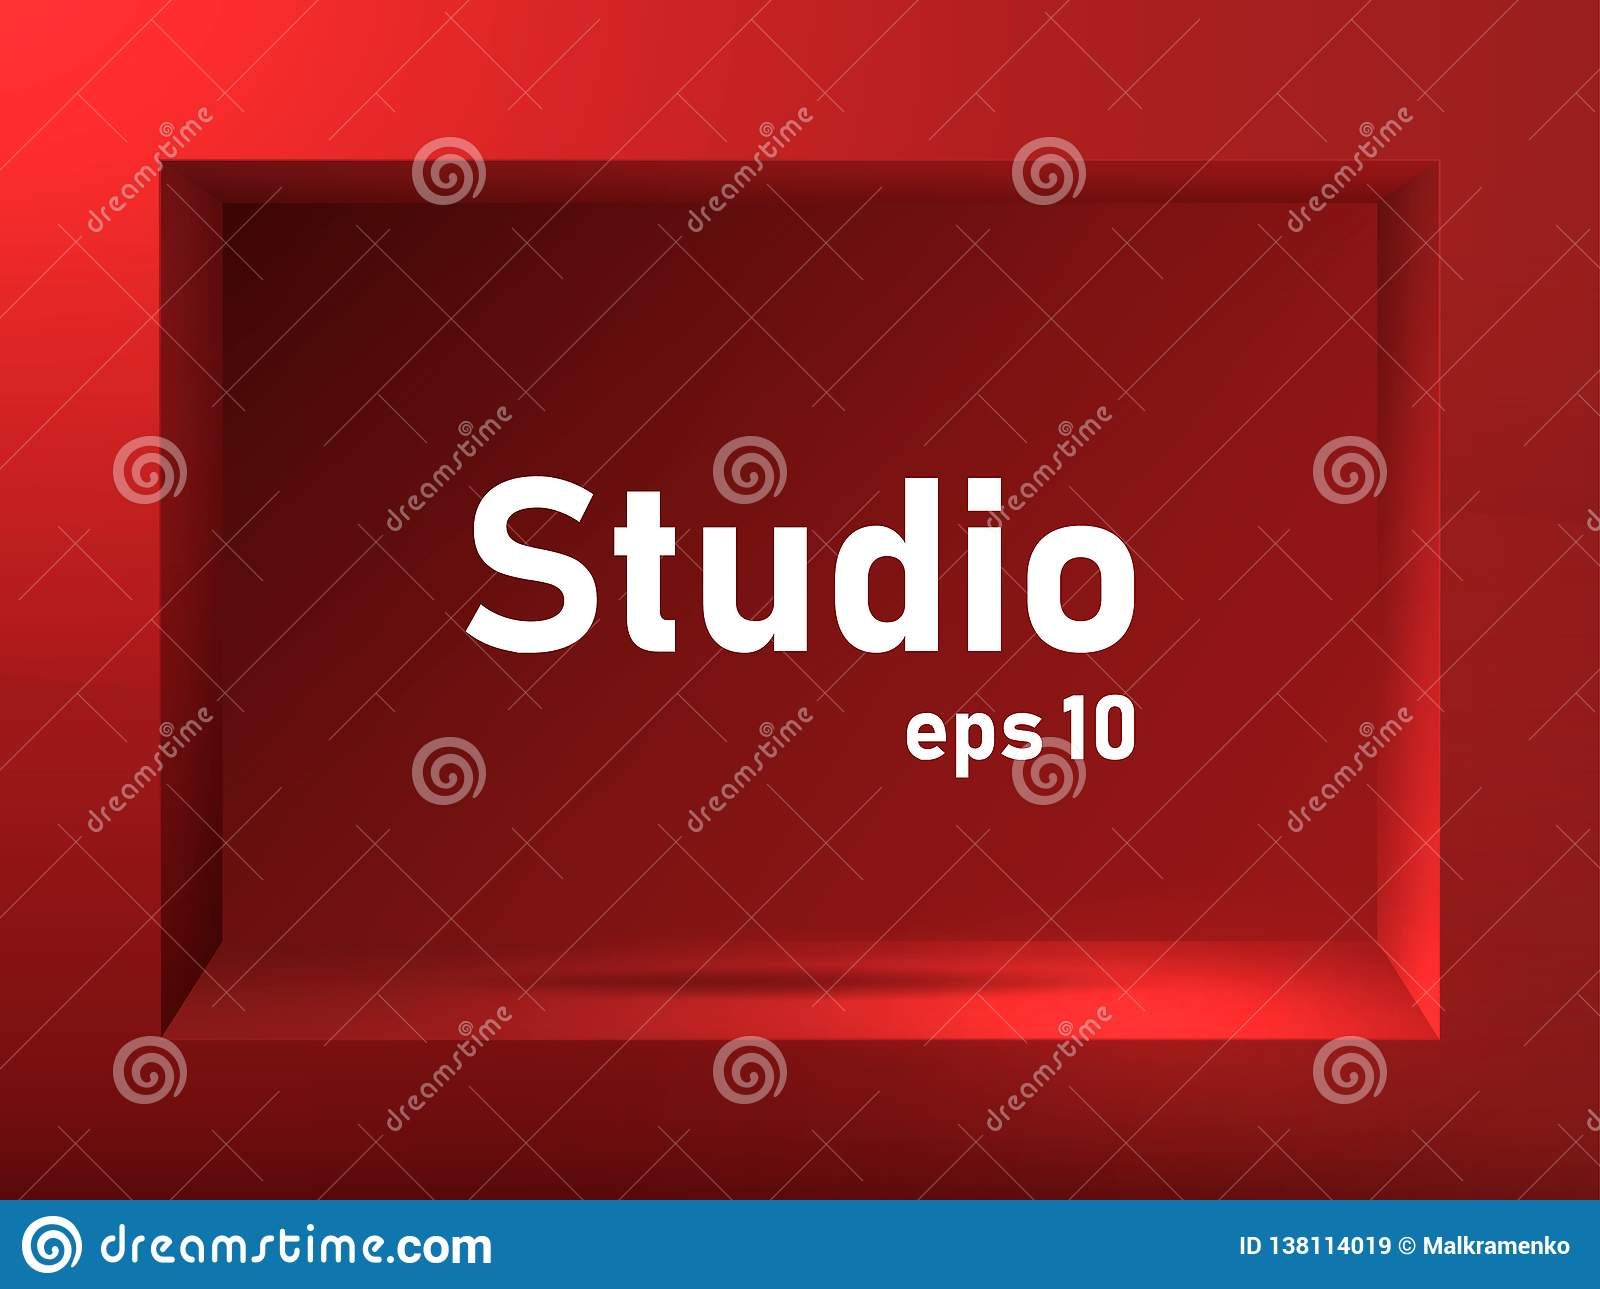 Exhibition Stand Free Vector : Empty red studio background with square groove. free space for